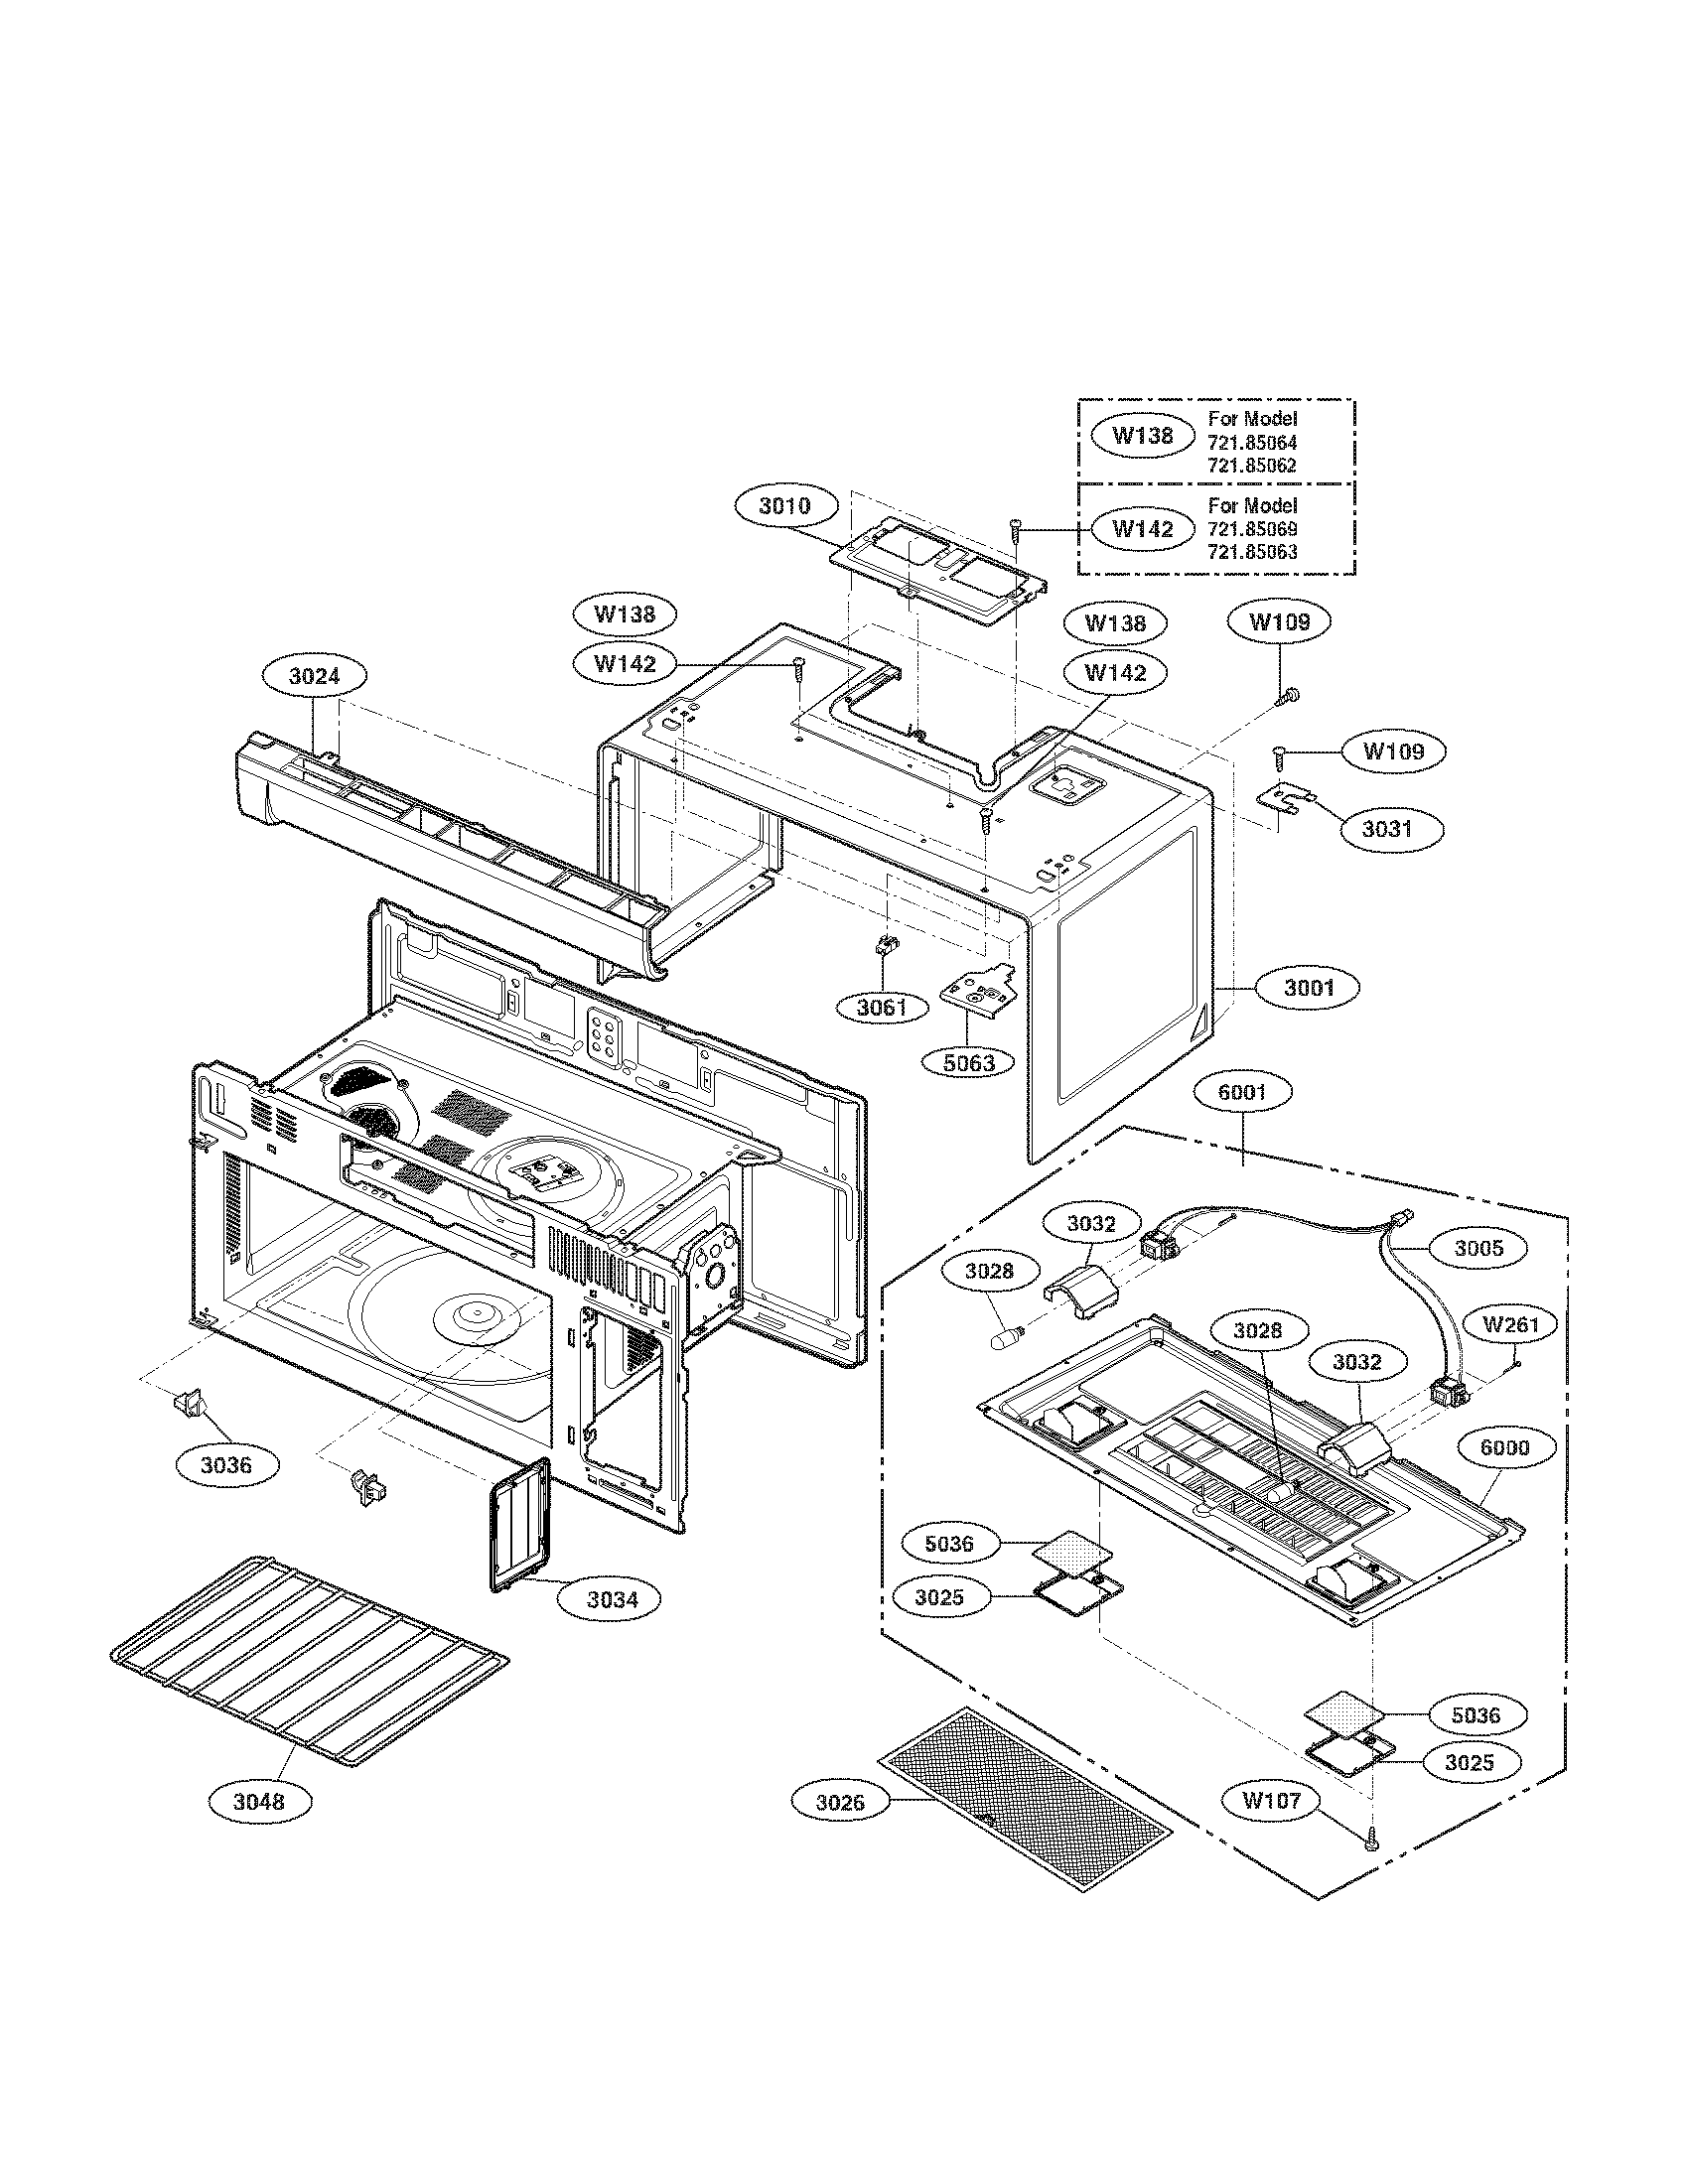 OVEN CAVITY PARTS ASSEMBLY Diagram & Parts List for Model